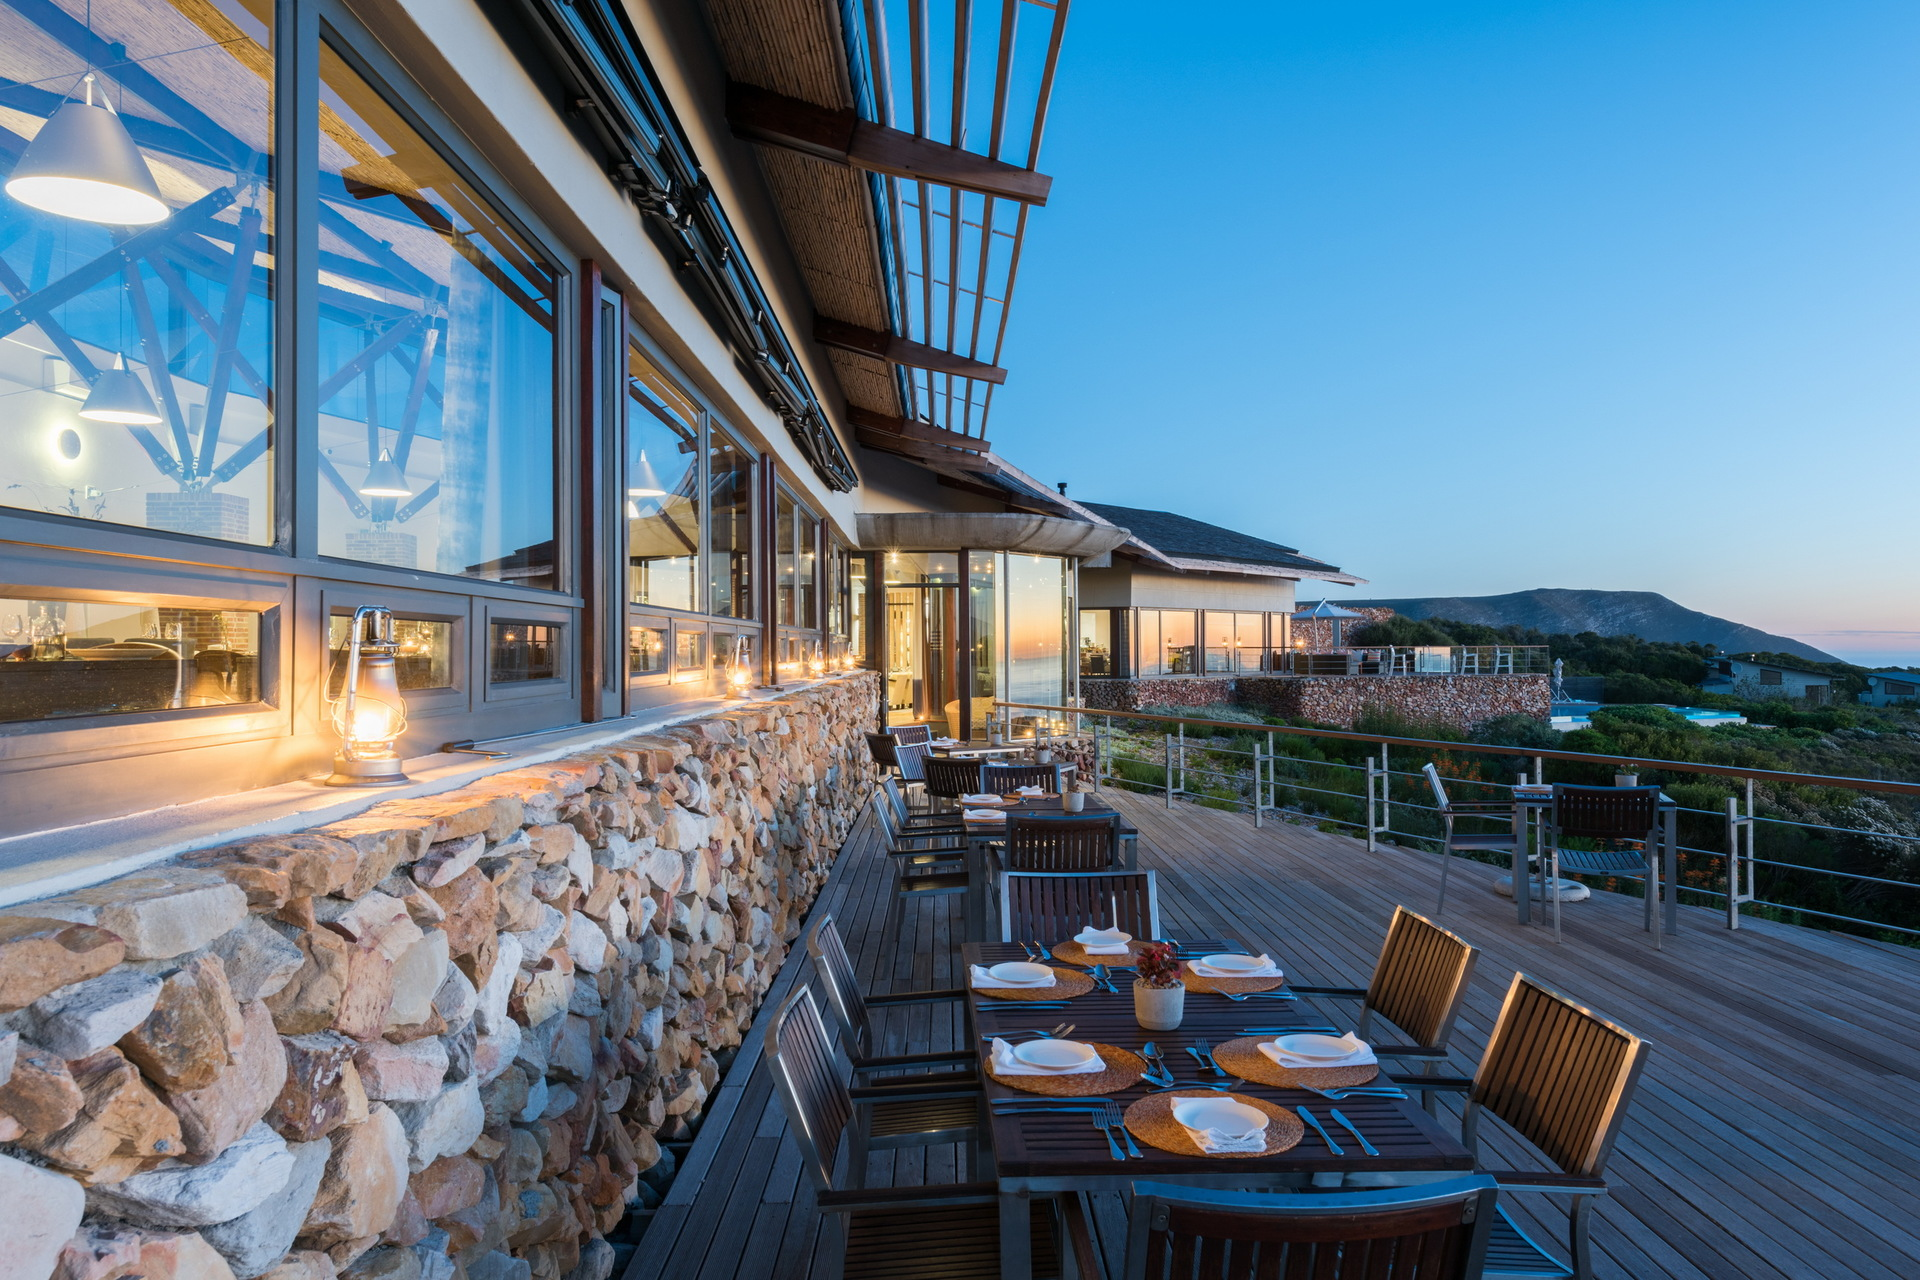 grootbos forest lodge - dining deck area #1.jpg